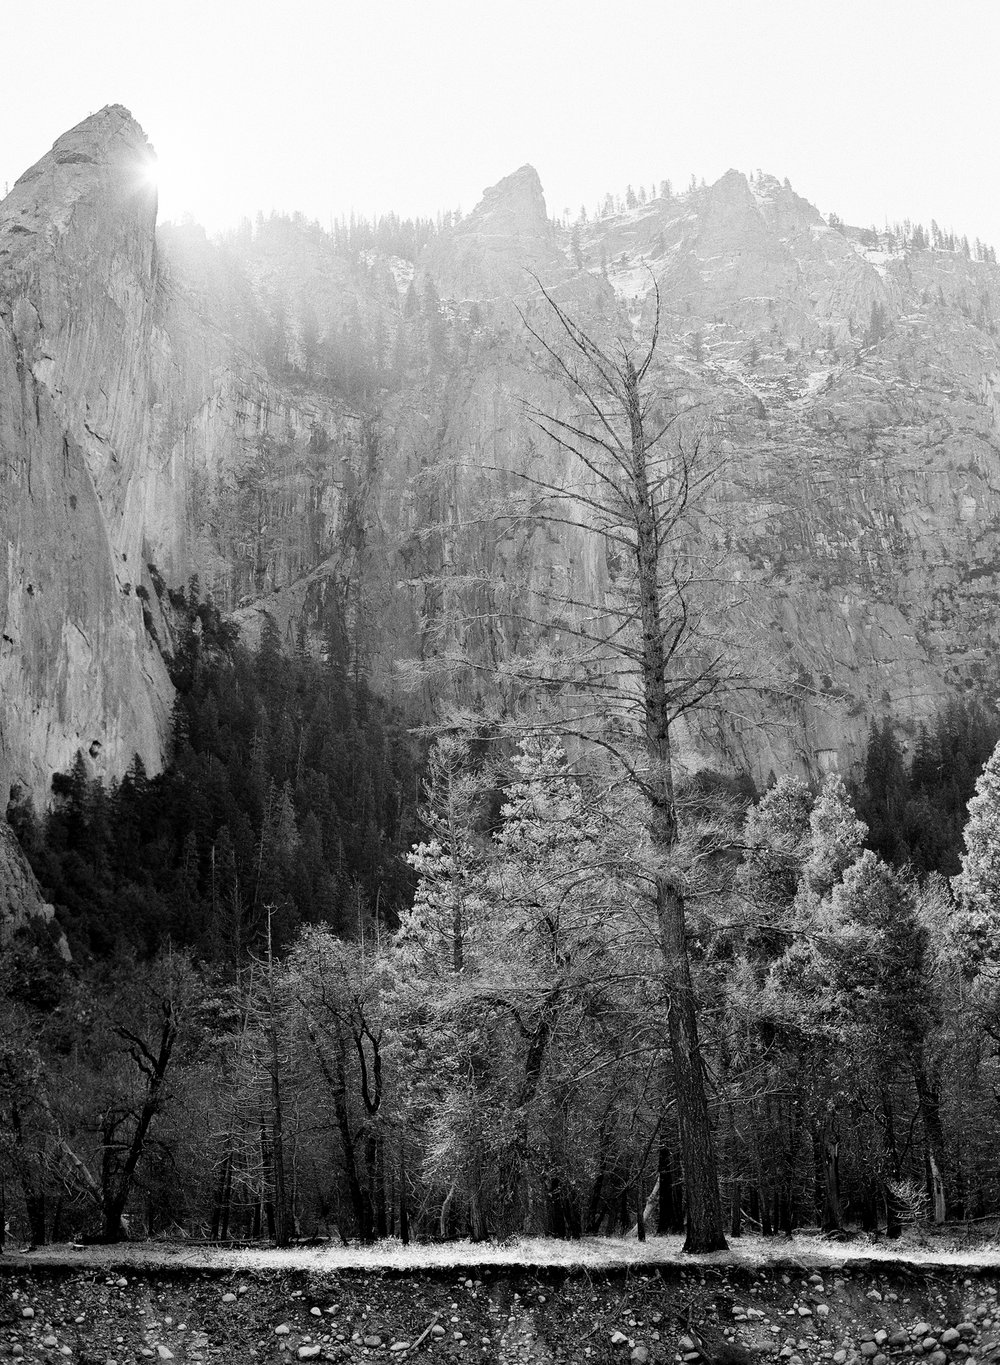 Leaning Tower and Tree, Yosemite Valley